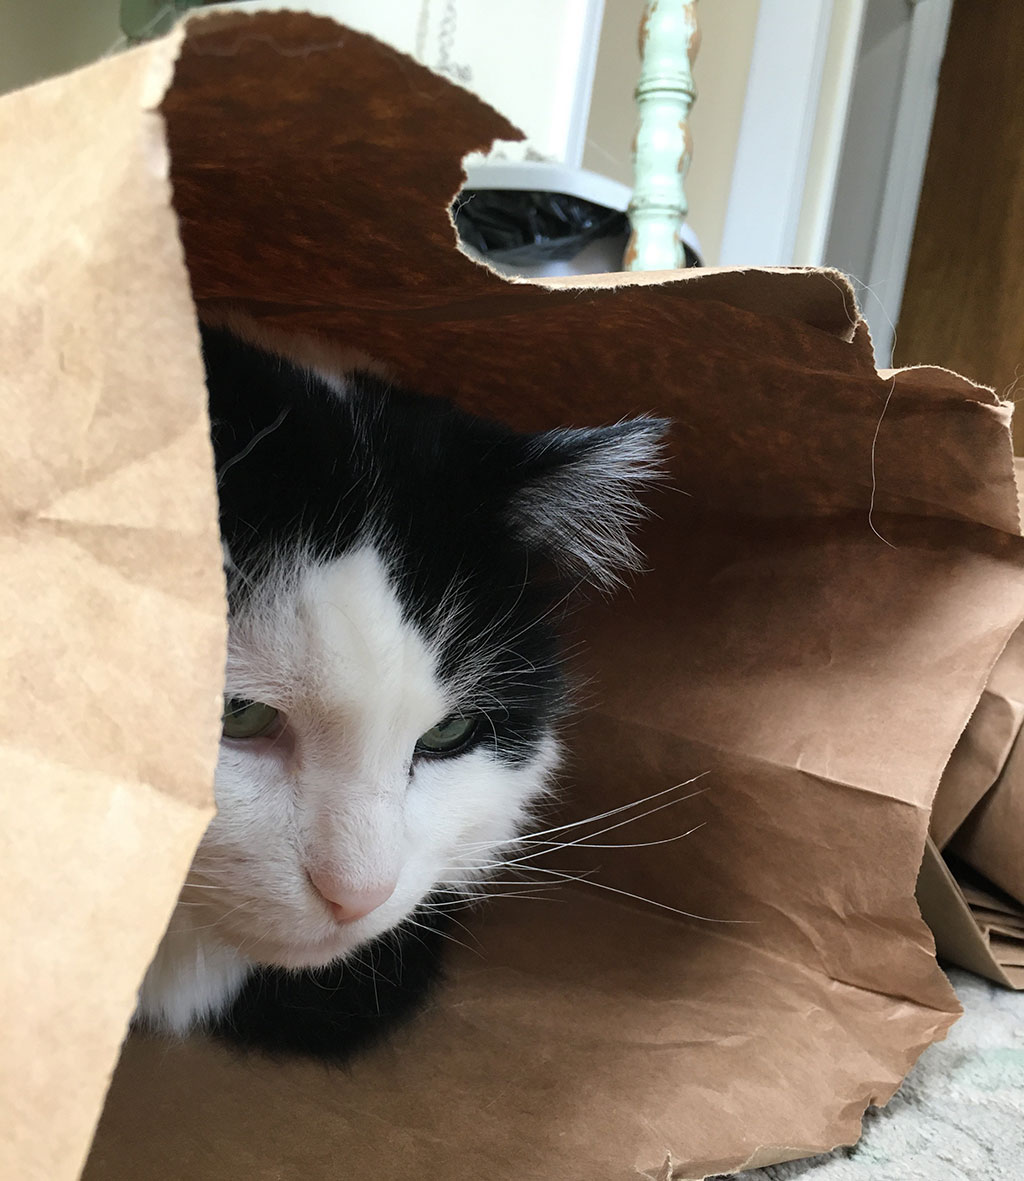 Cat not out of the bag yet.